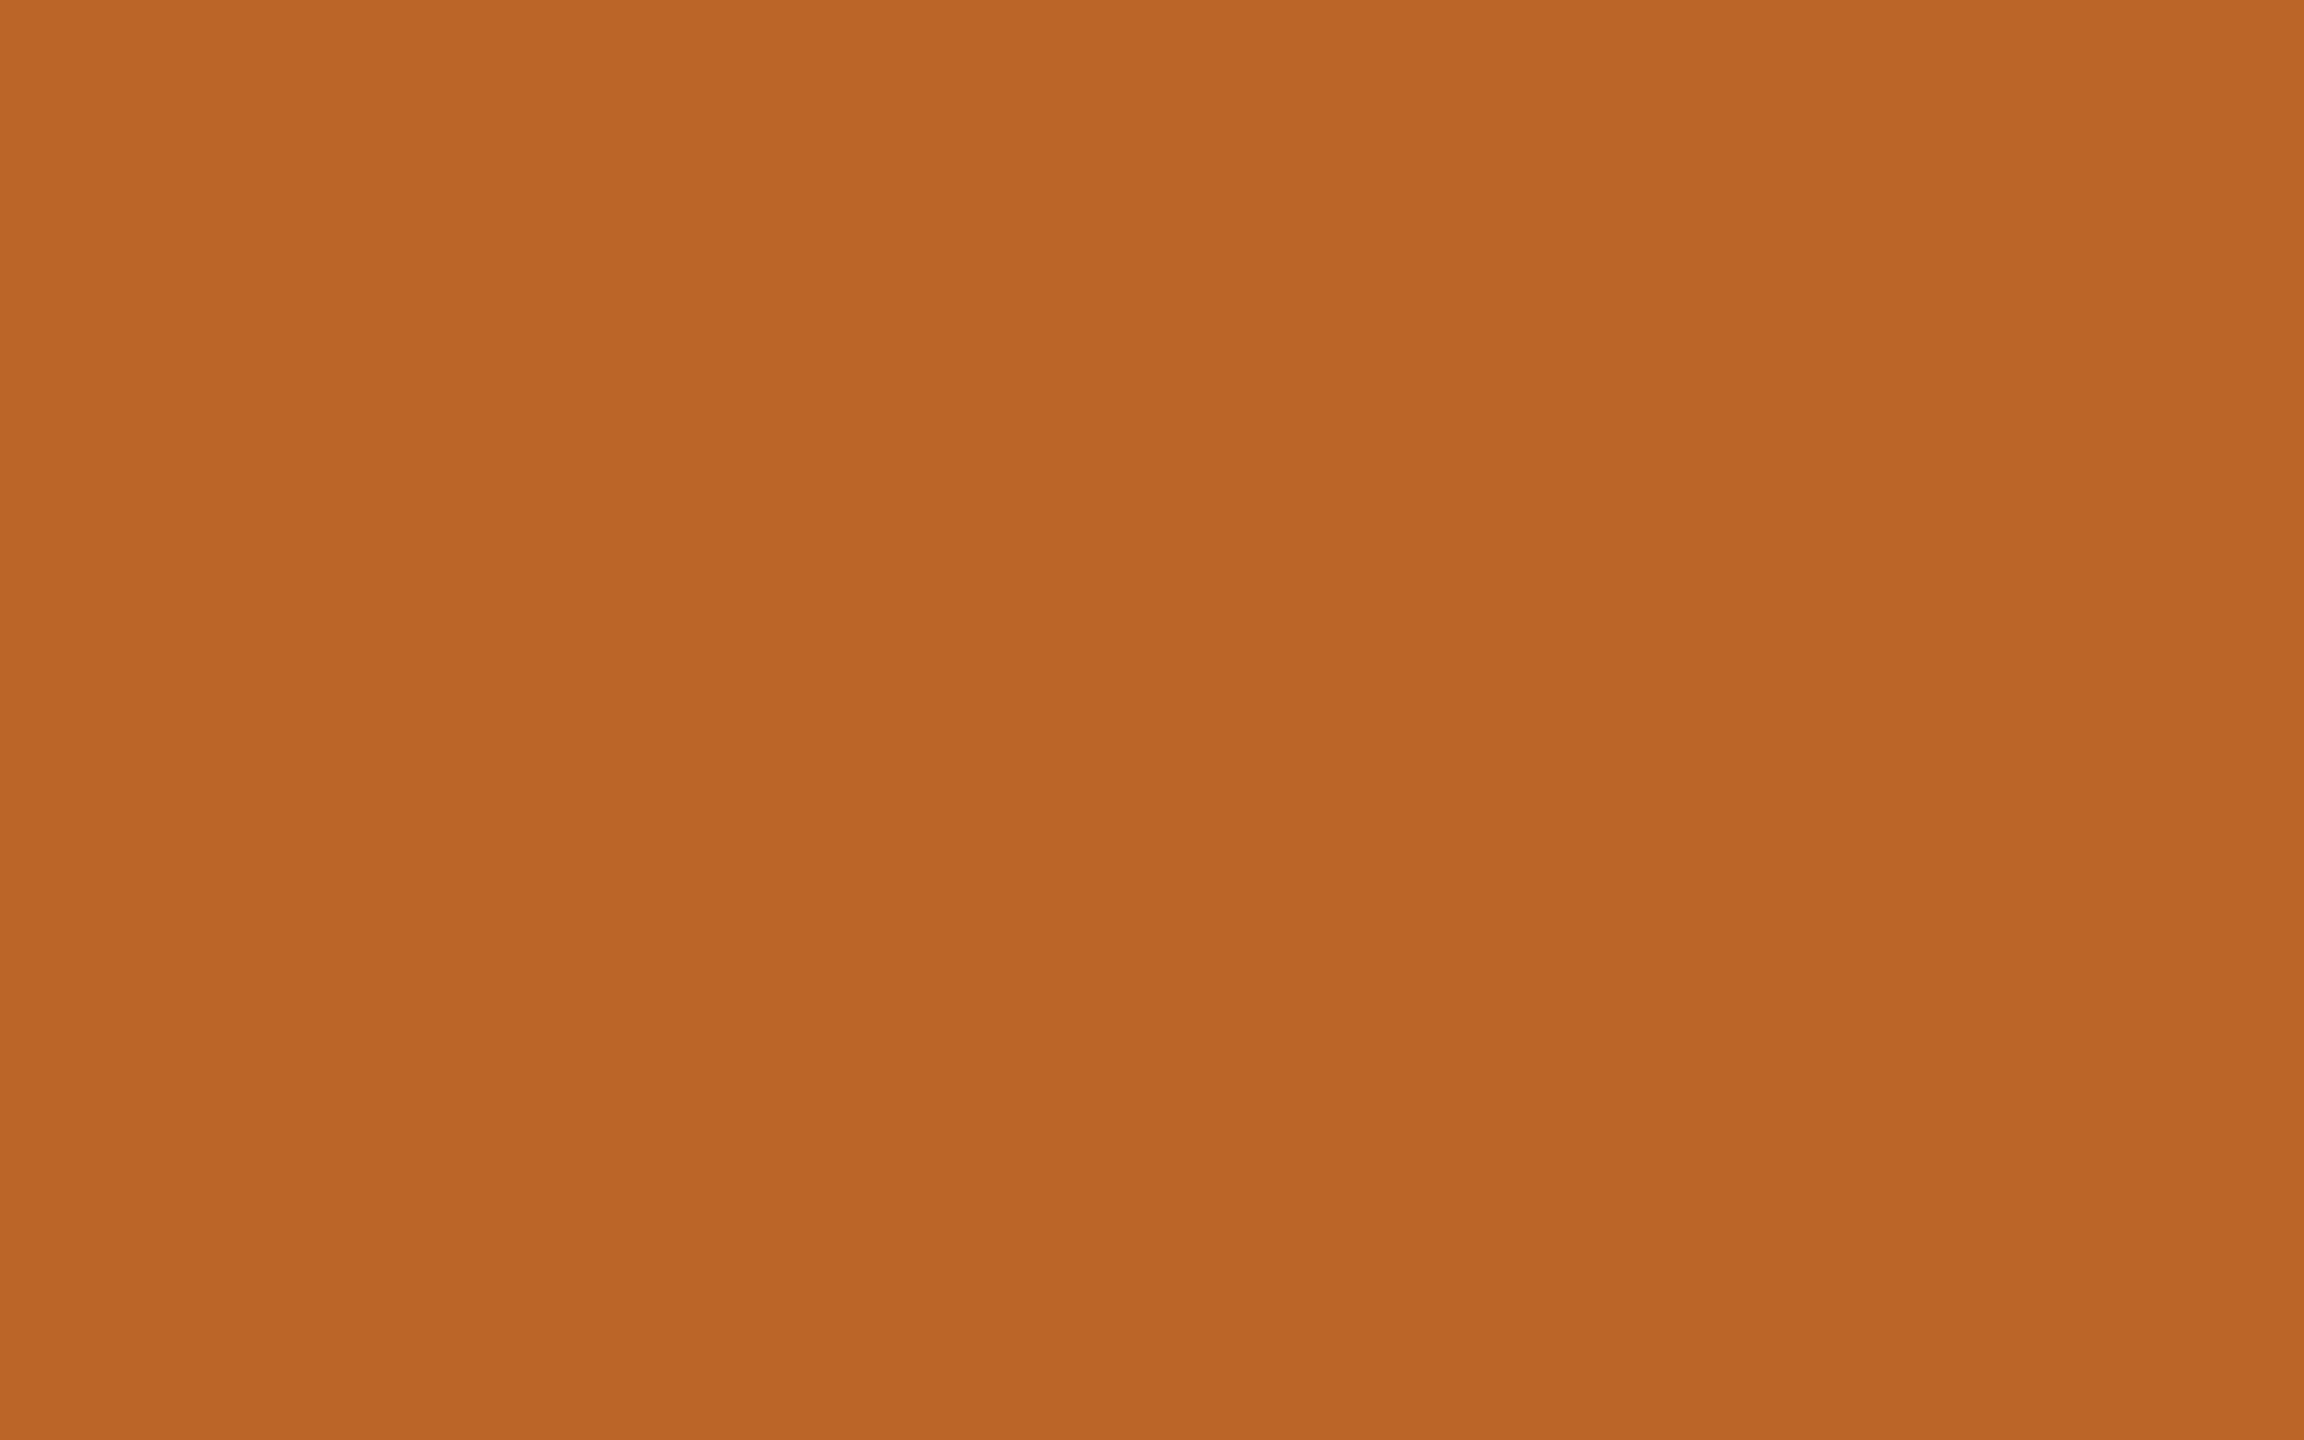 2304x1440 Ruddy Brown Solid Color Background